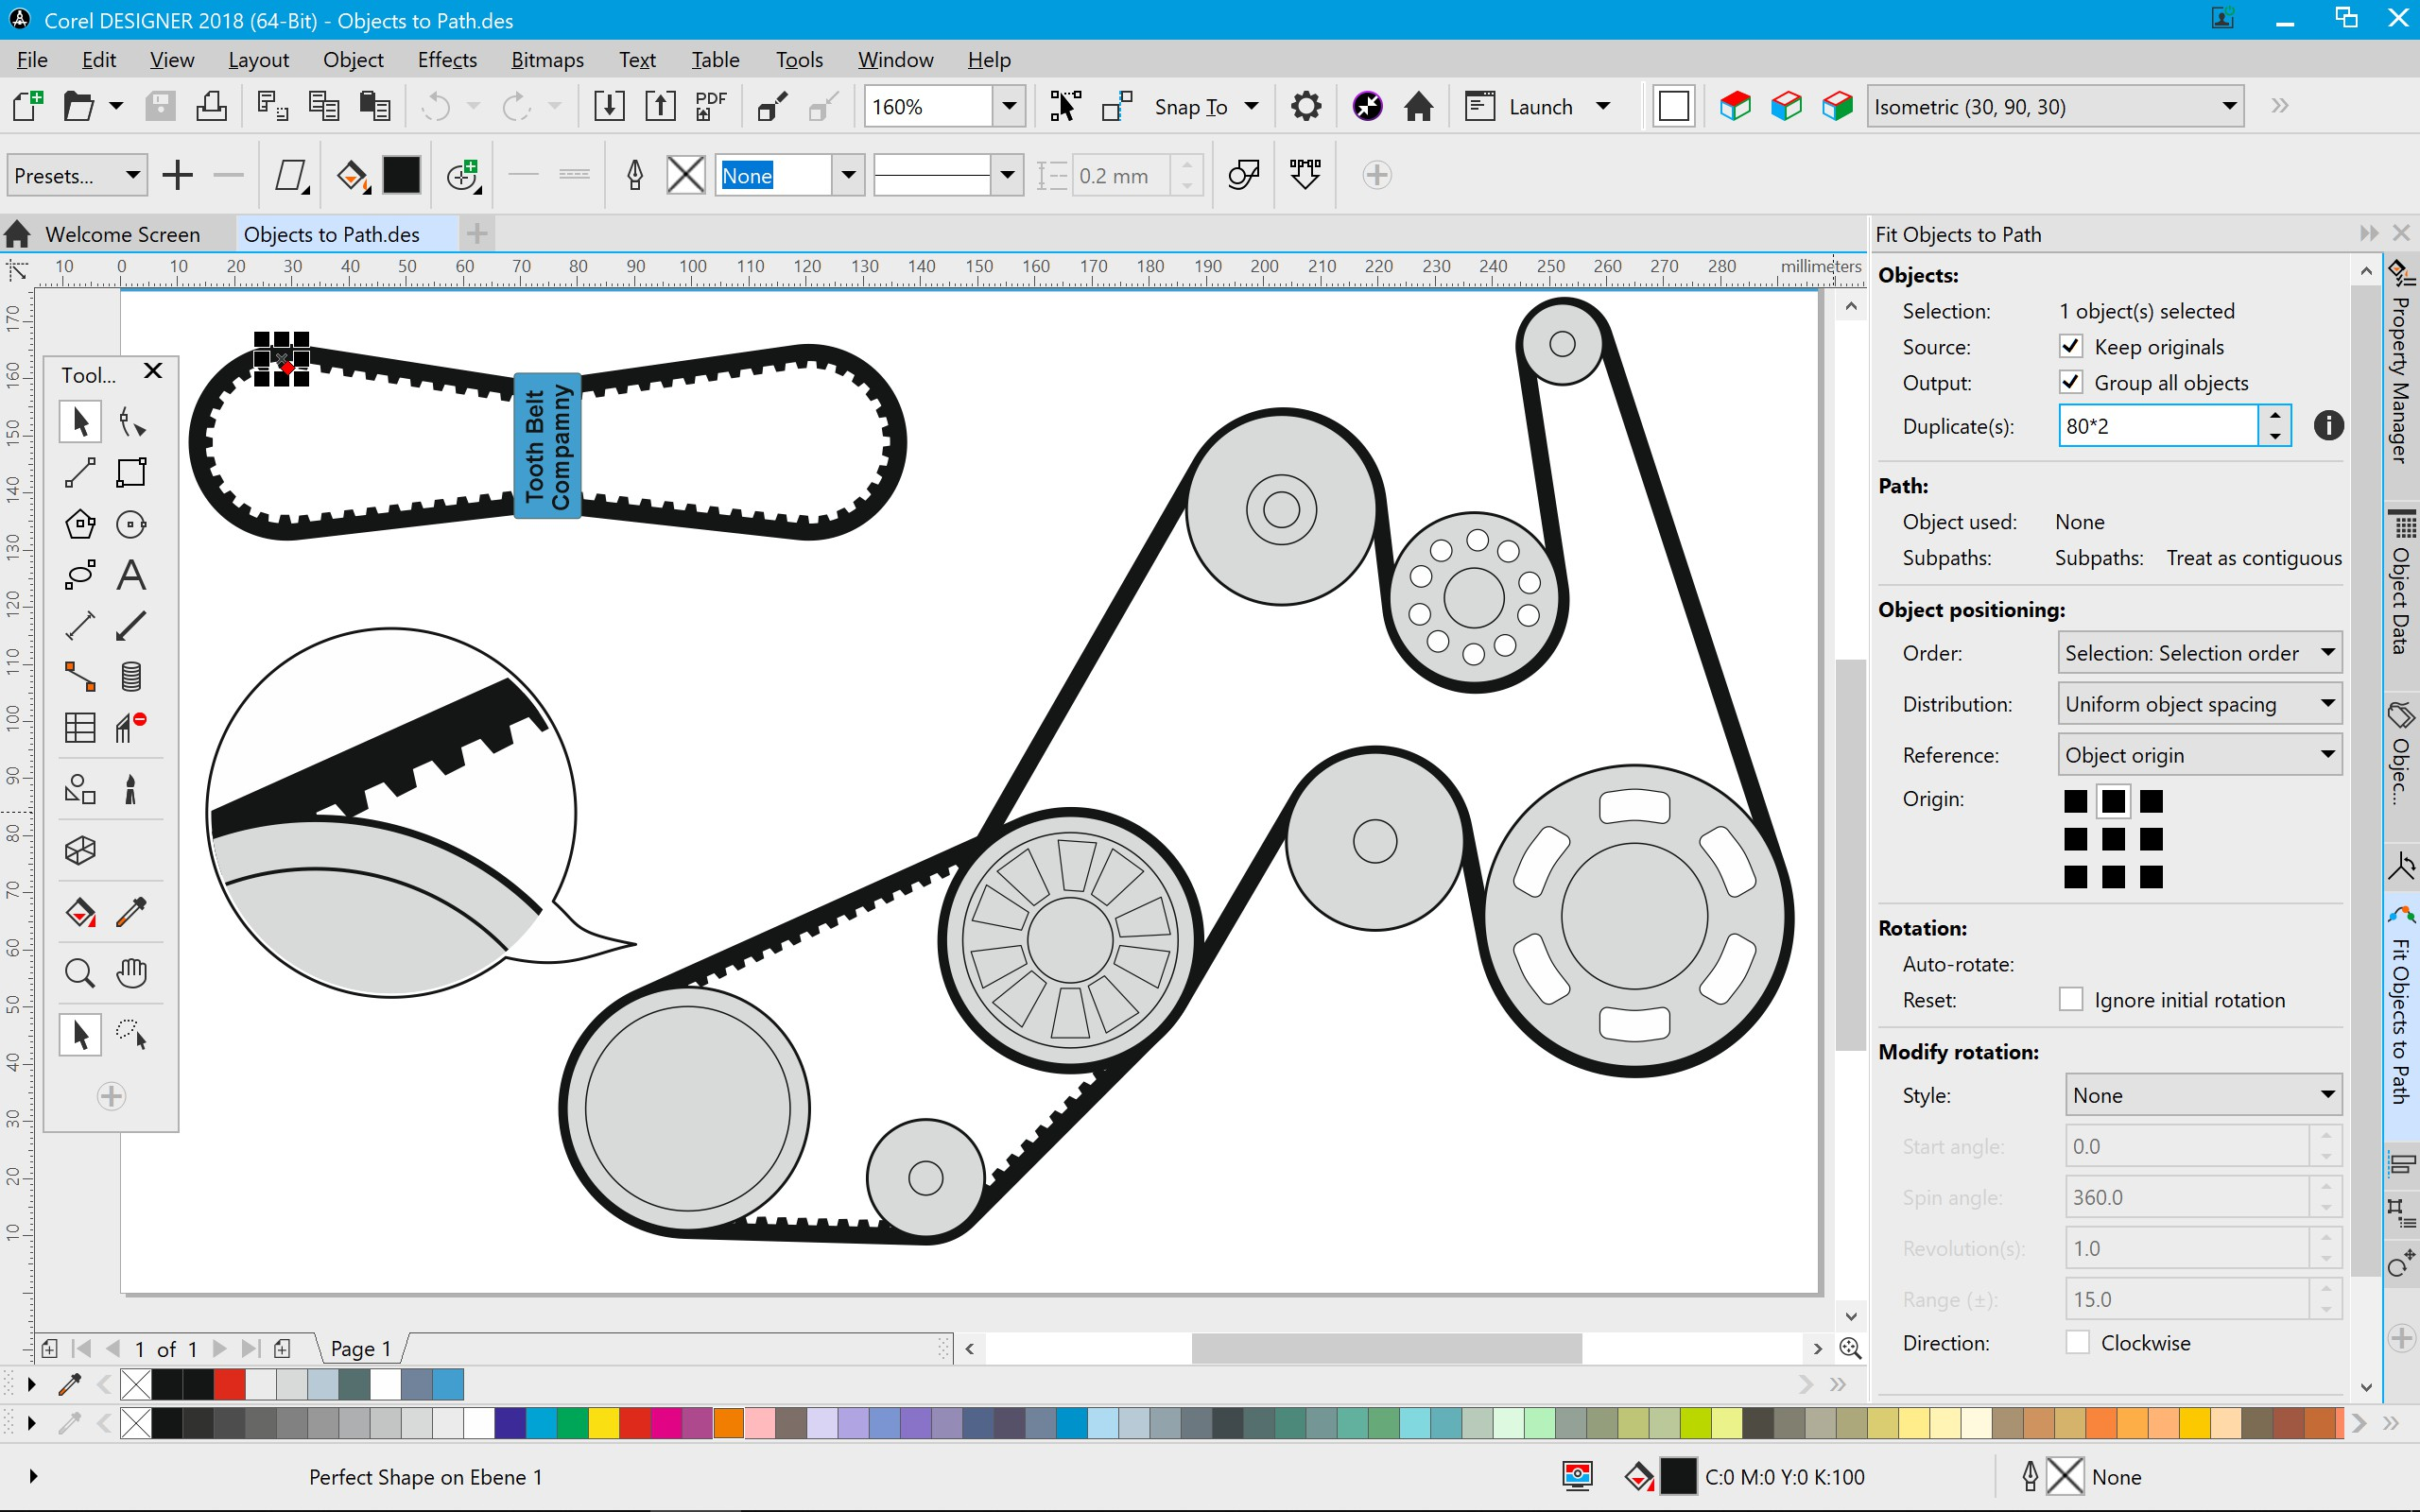 CorelDRAWTechnicalSuite2018-DESIGNER-Fit-Objects-to-Path-EN